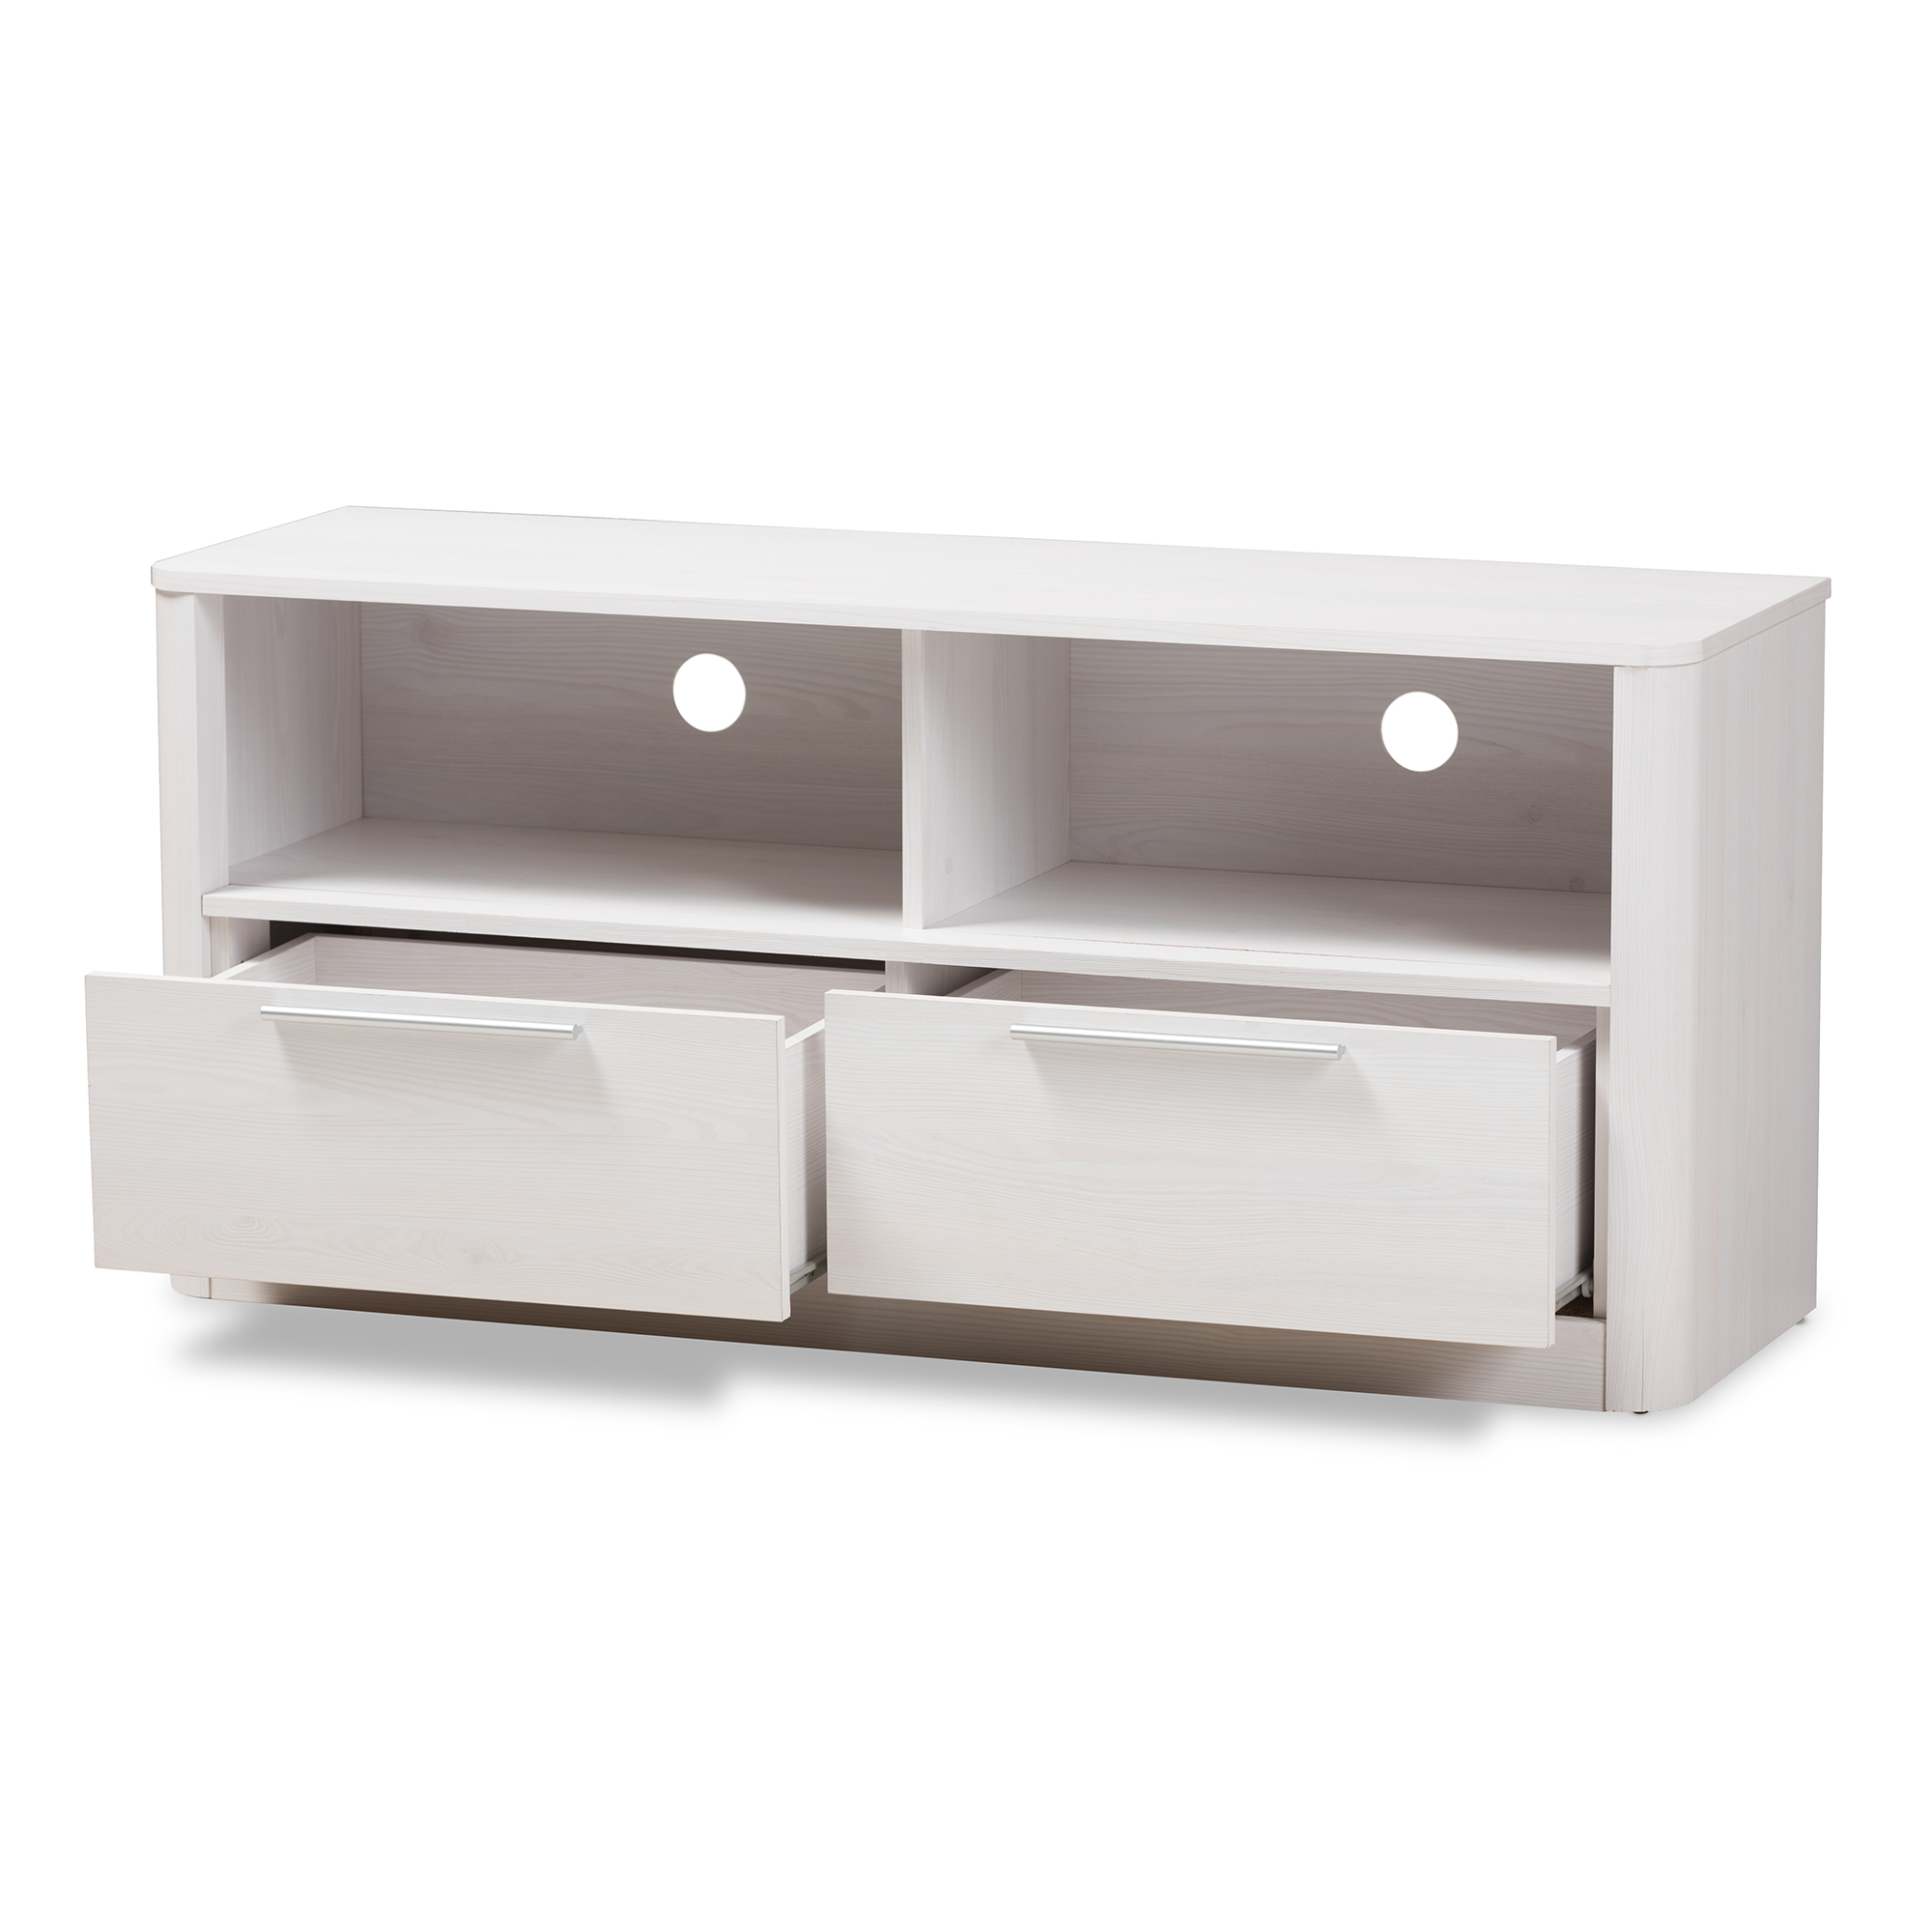 Tv Sideboard Modern Baxton Studio Carlingford Modern And Contemporary Whitewashed Wood 2 Drawer Tv Stand